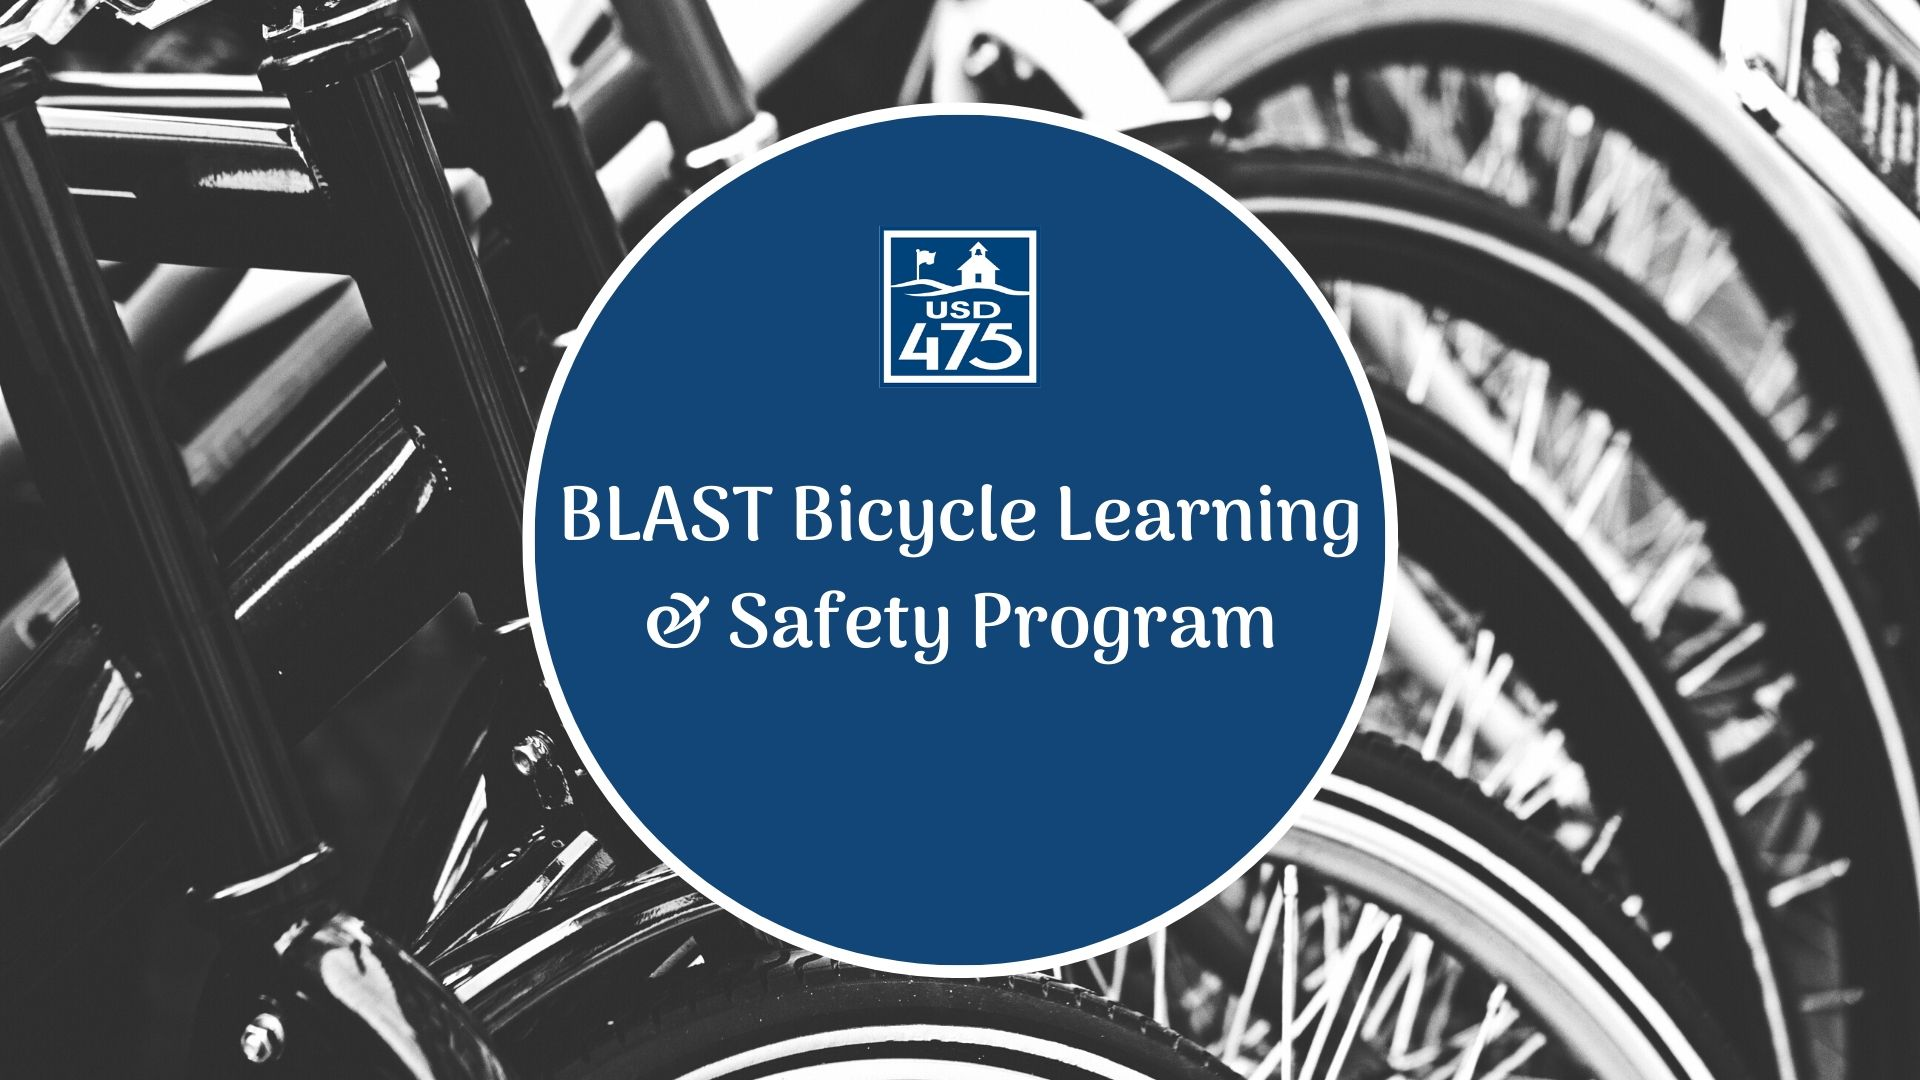 BLAST Bicycle Learning and Safety Program